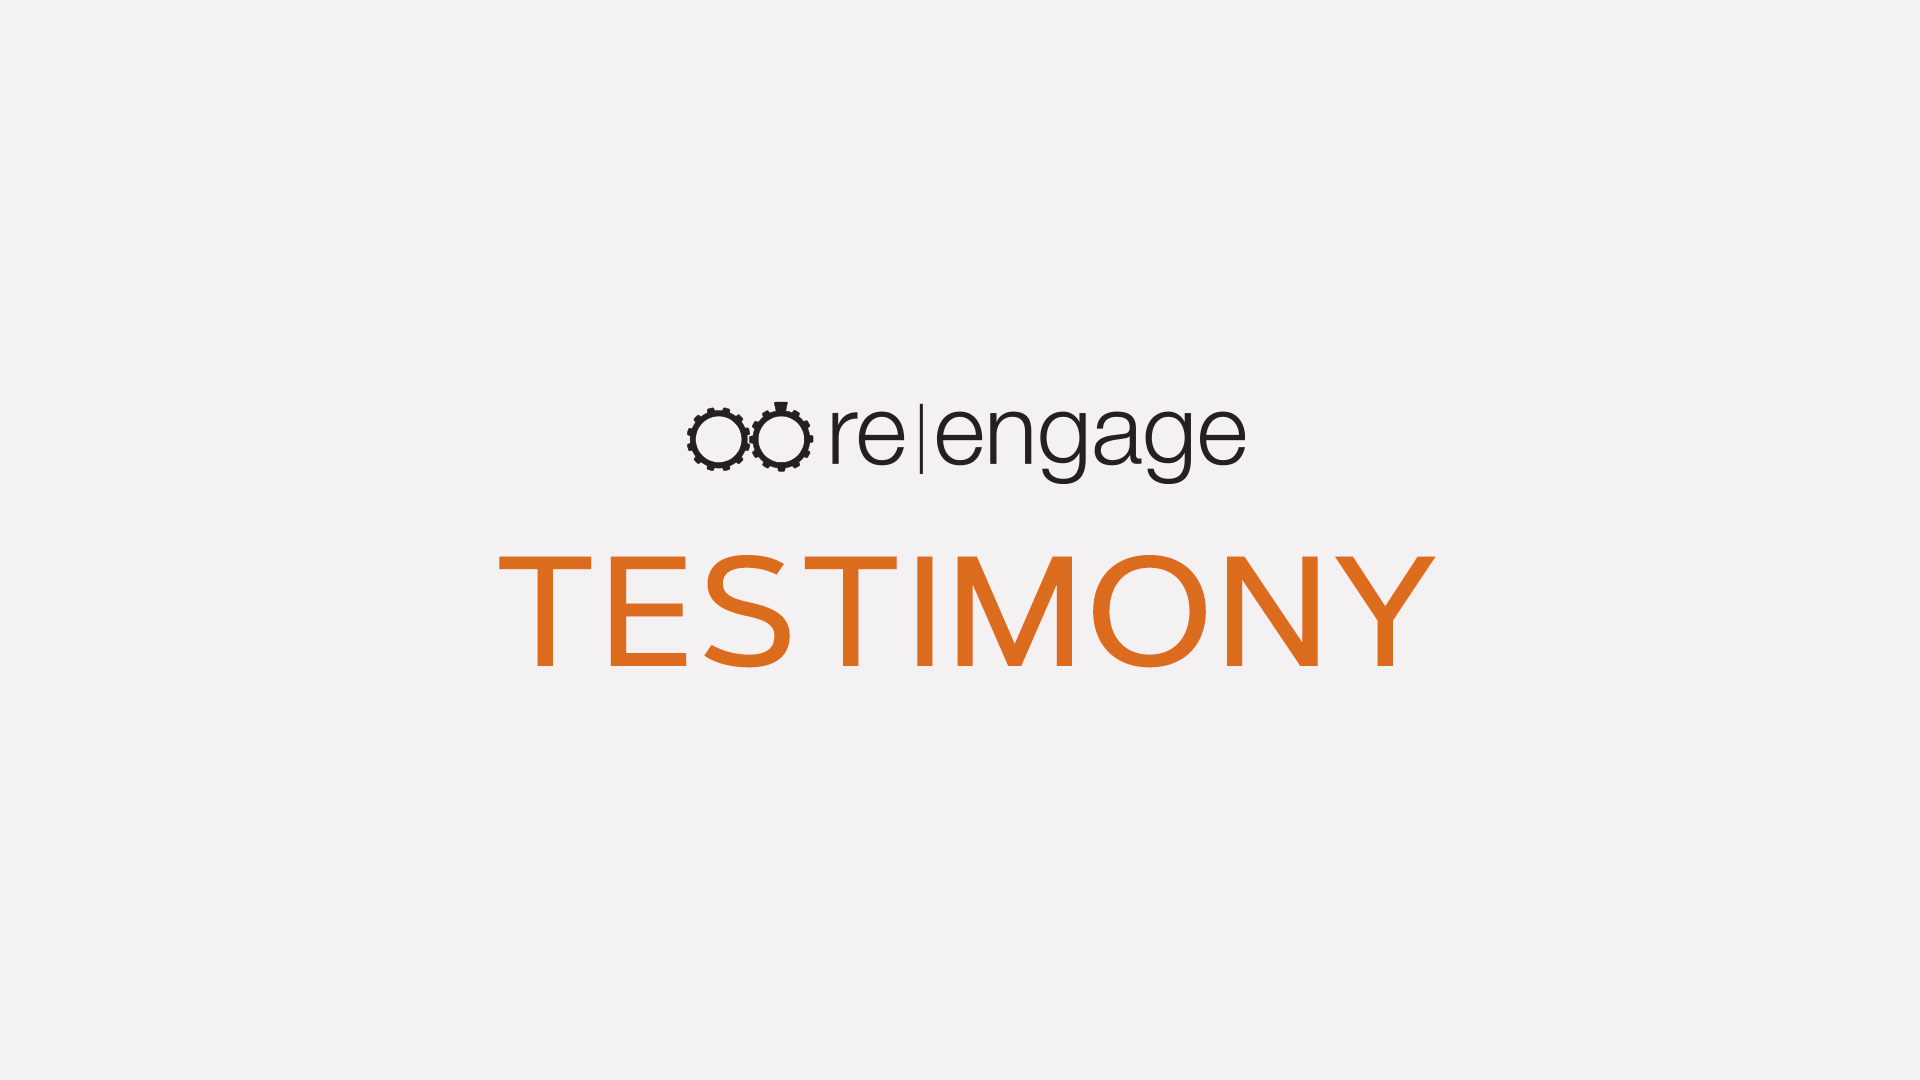 Bobby and Shari Johns - re|engage Testimony